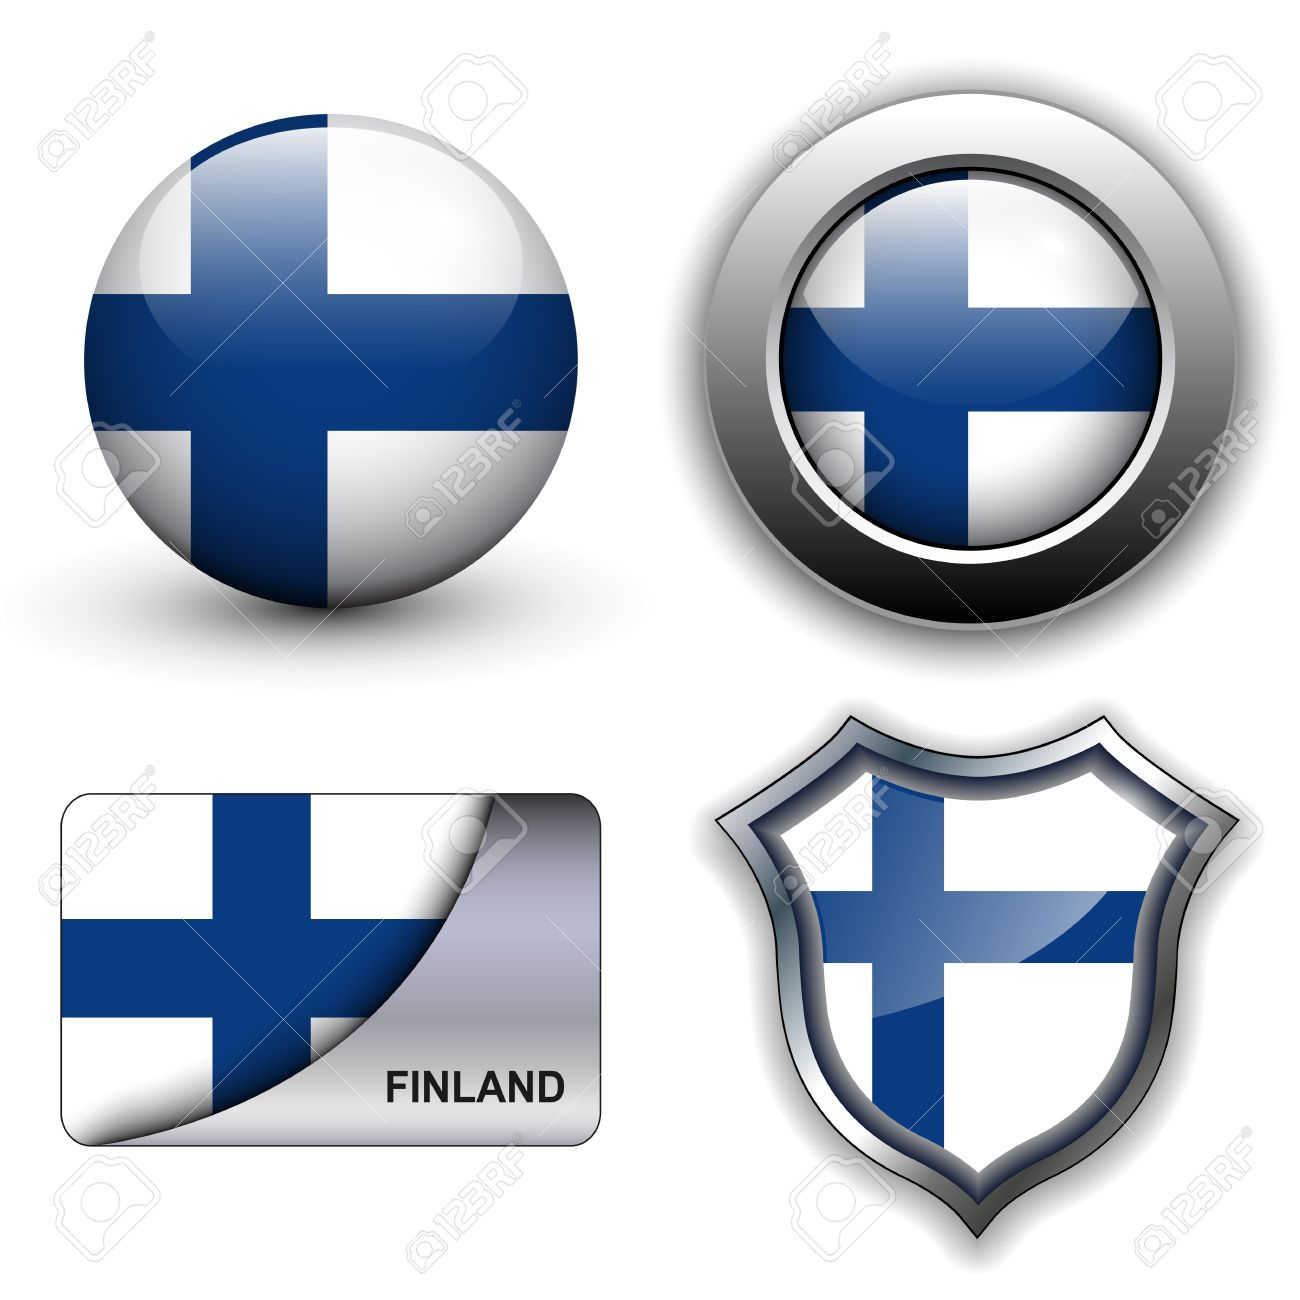 Finland clipart #15, Download drawings